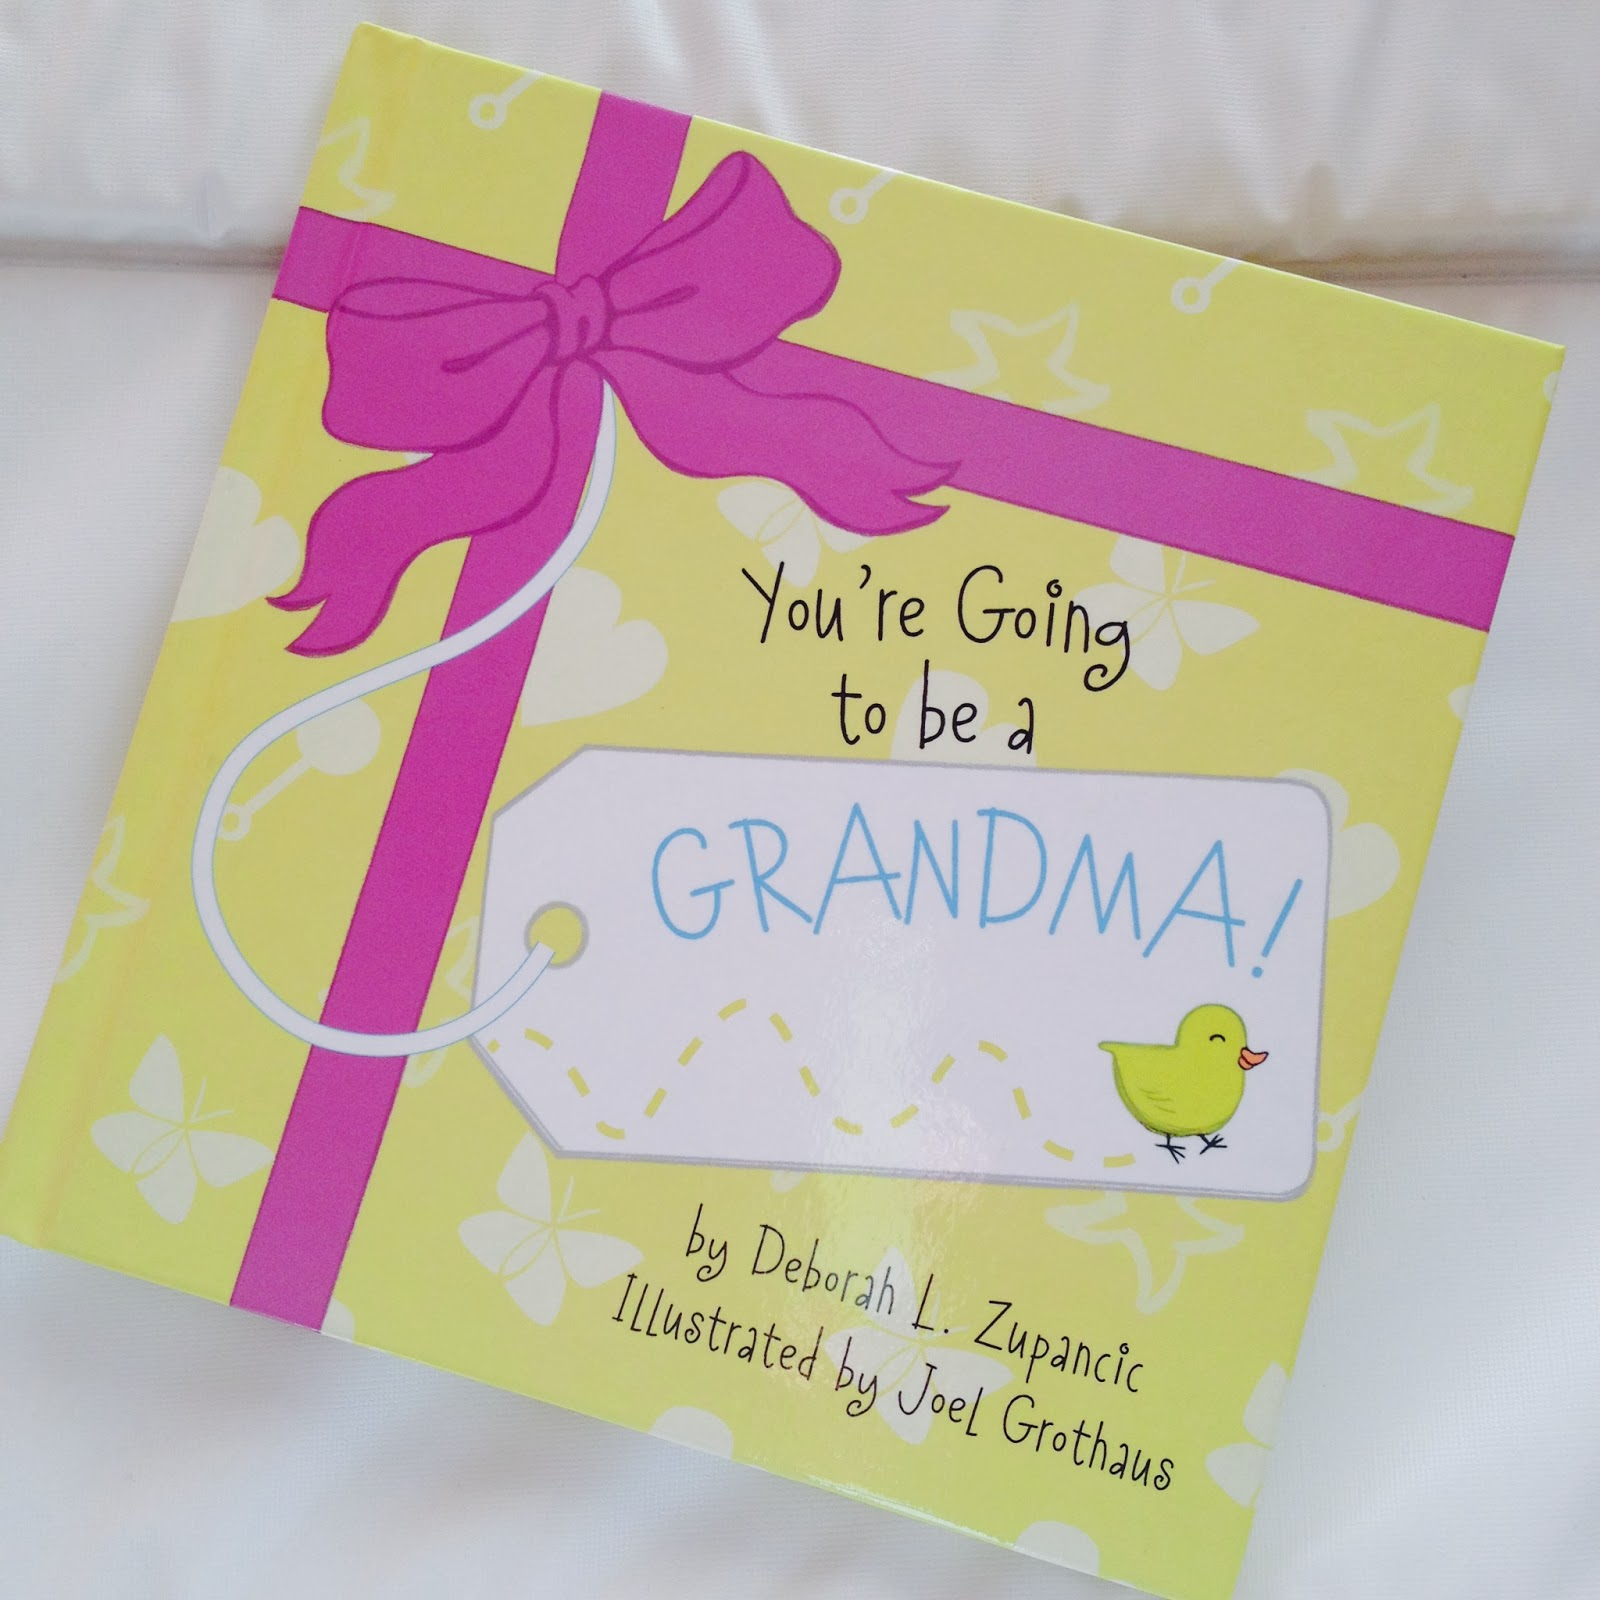 a cute way to tell your own mama youre going to be a granny v i bookclub